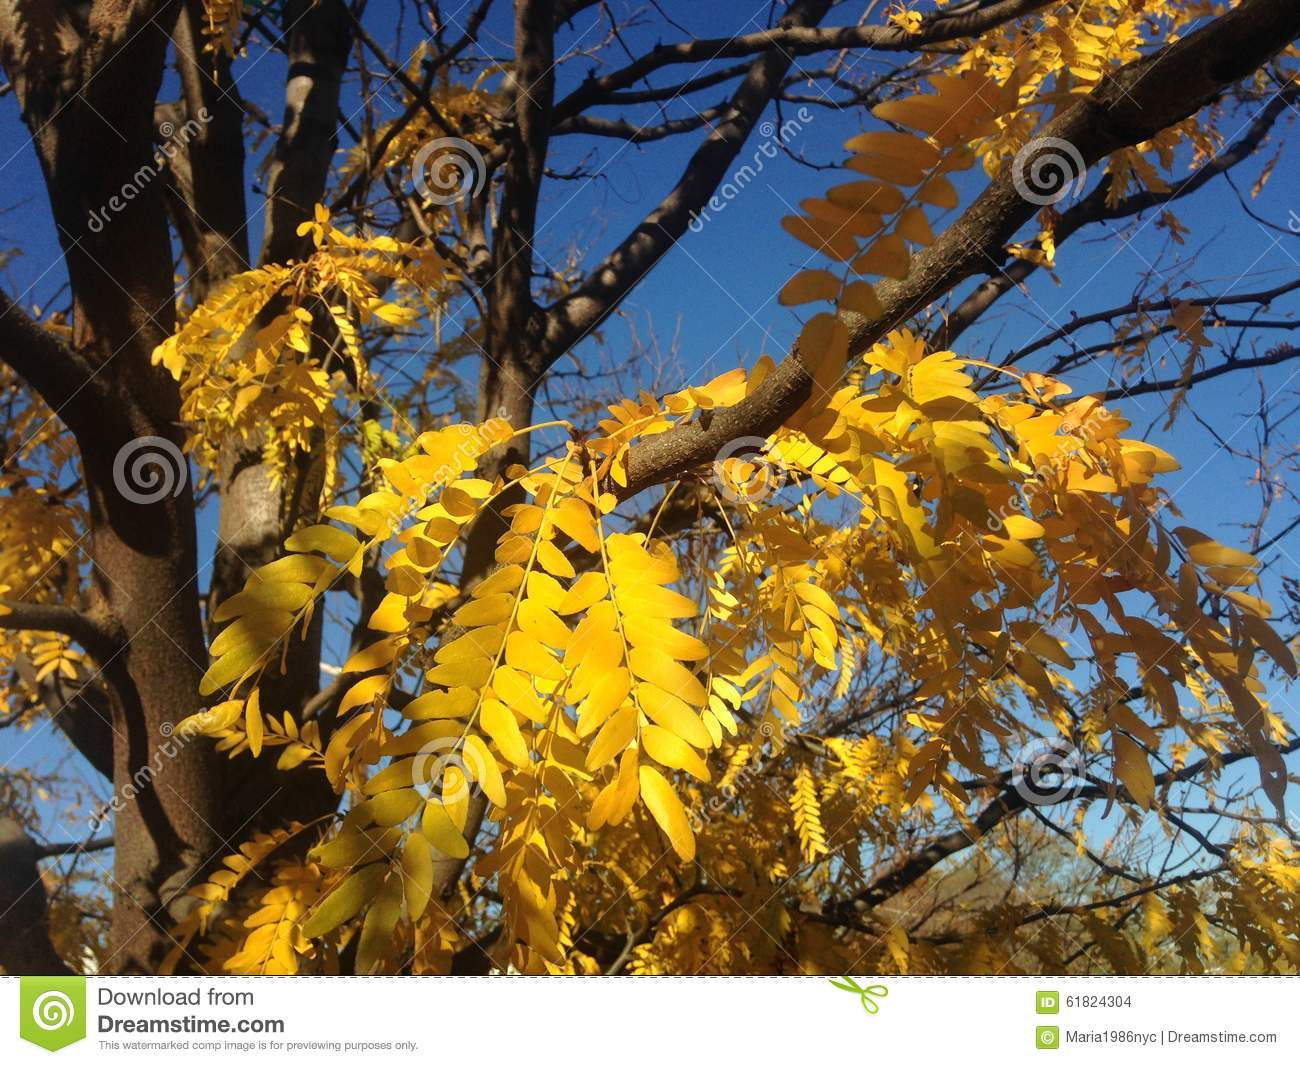 Gleditsia Triacanthos Tree With Yellow Leaves In The Fall. Stock.